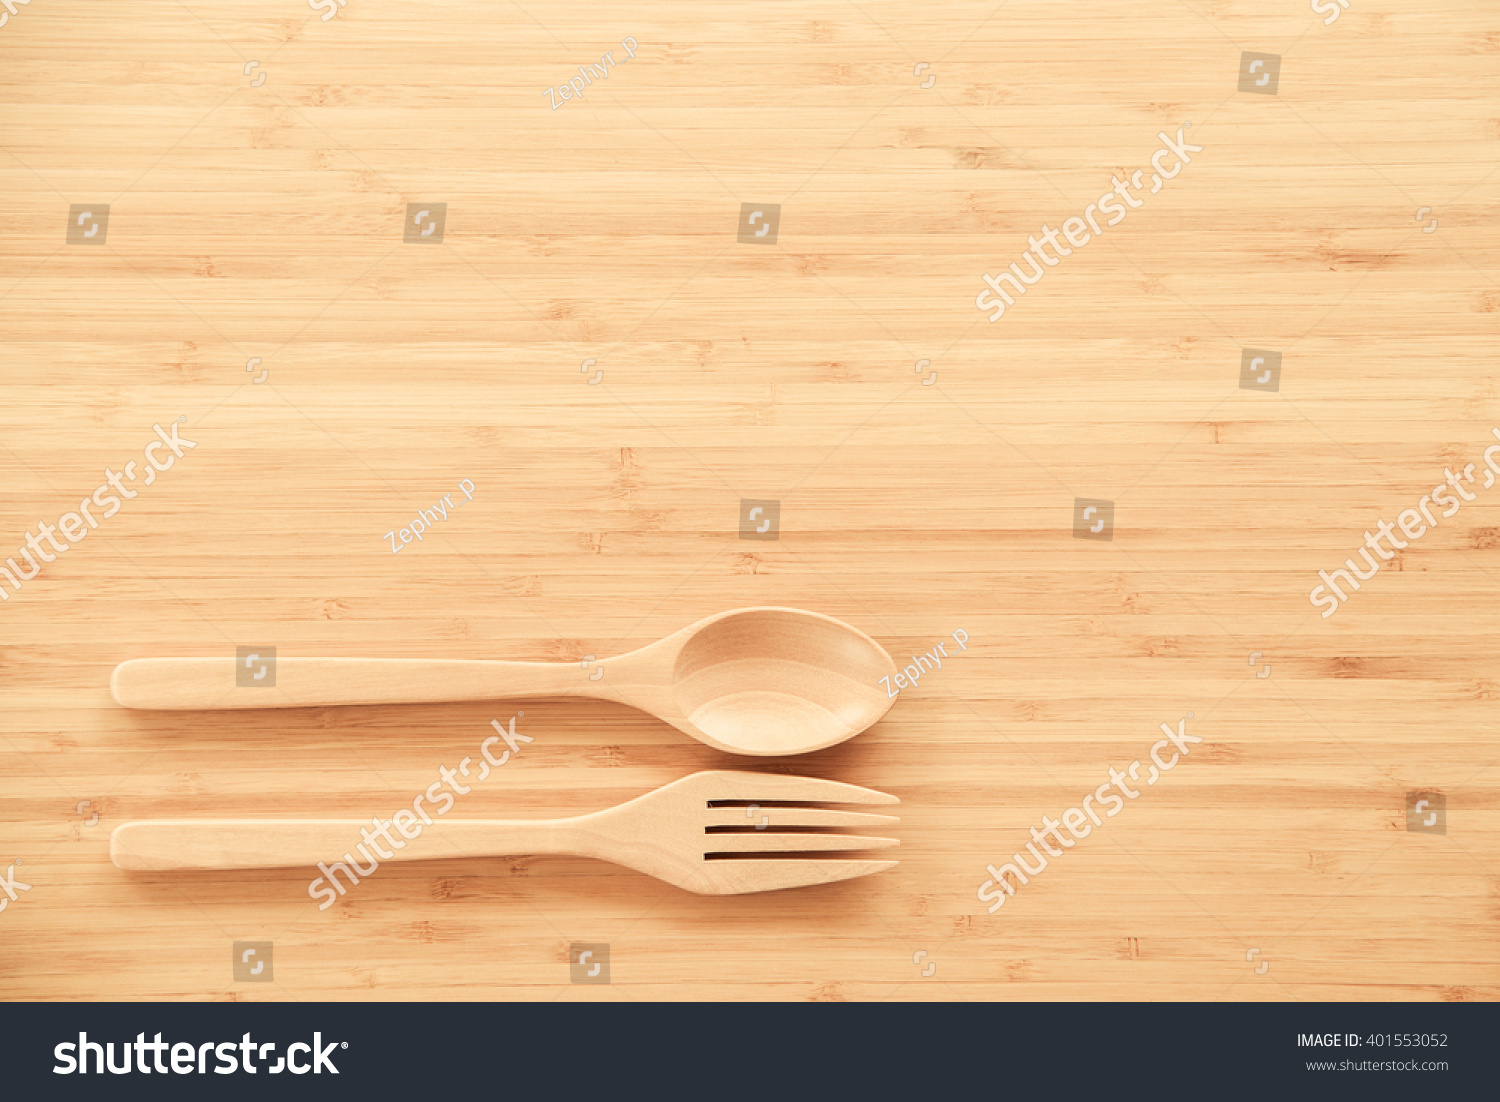 Wooden dining table background - Wooden Spoon And Fork On Wood Texture Of Dining Table From Top View Use For